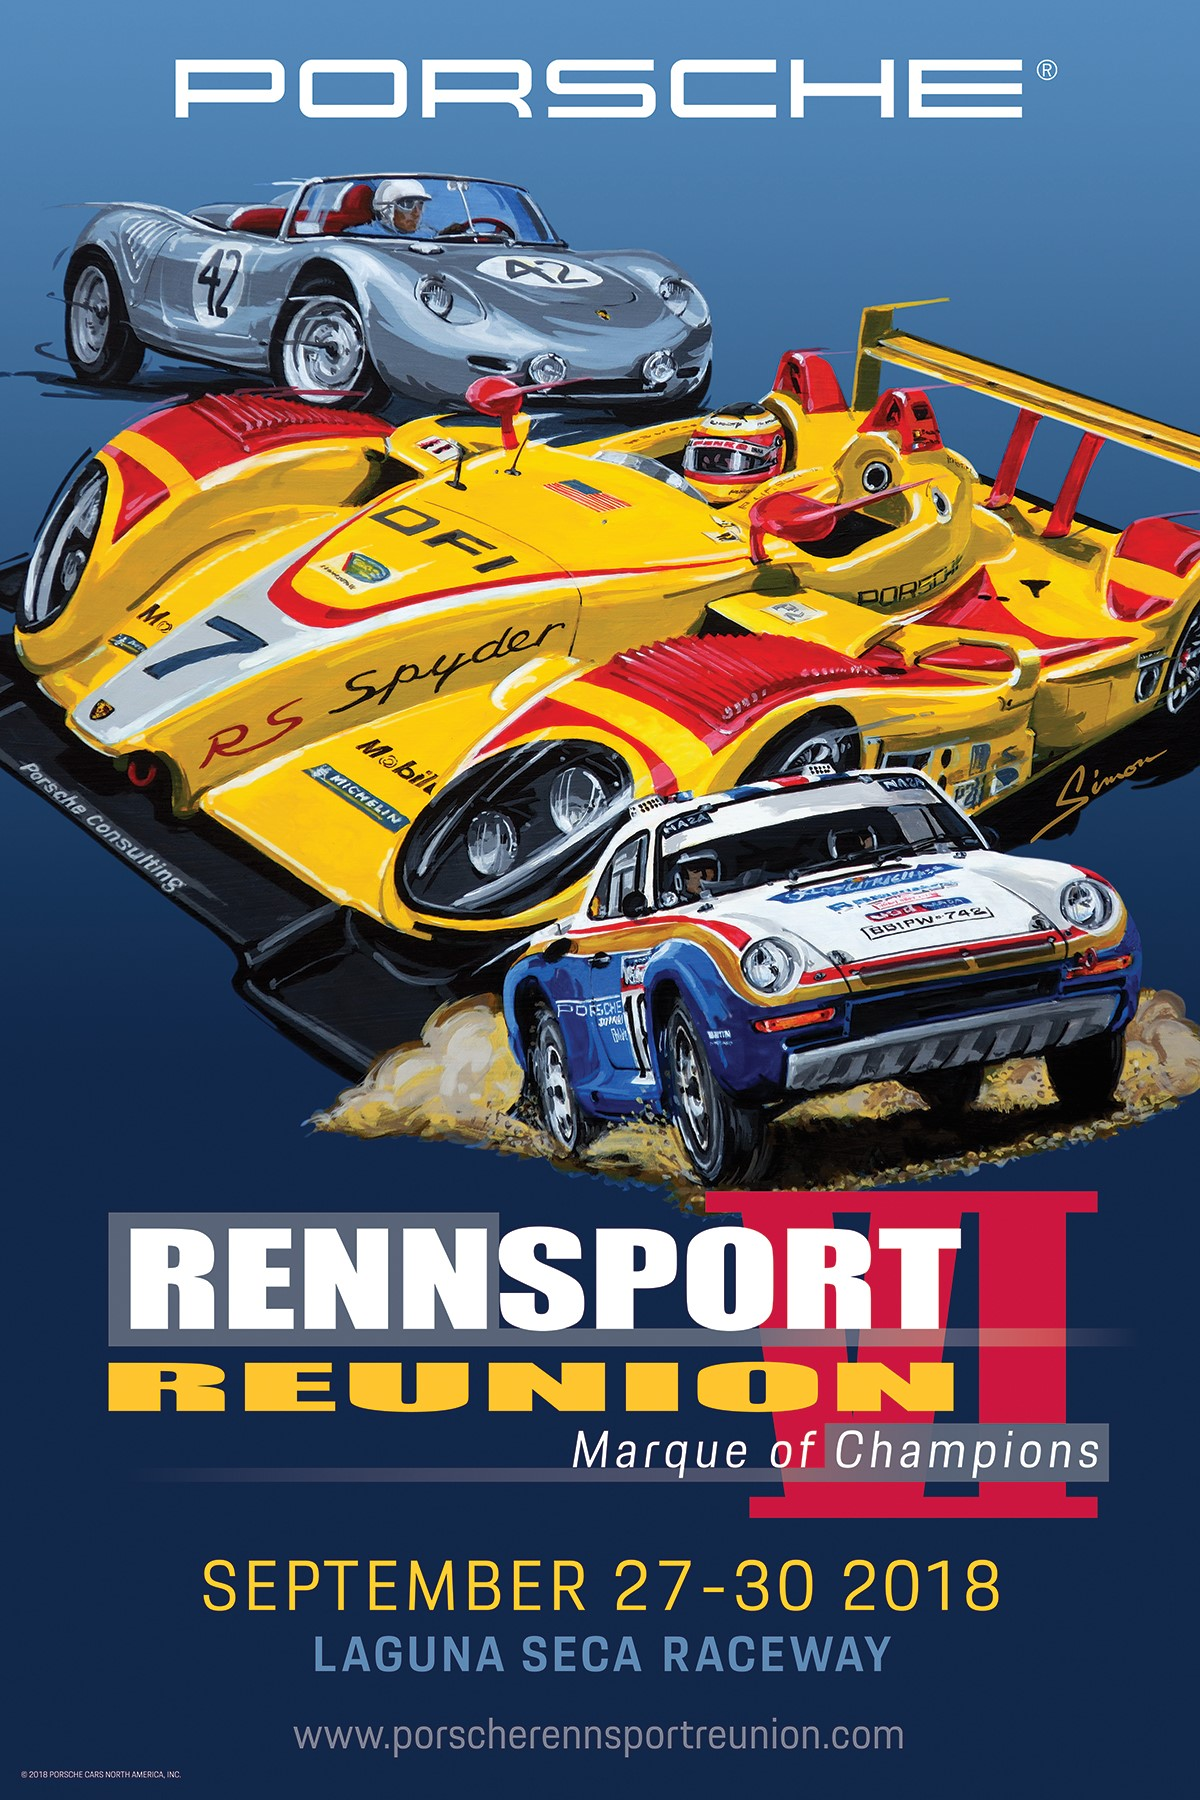 Porsche Unveils Official Poster for Rennsport Reunion VI